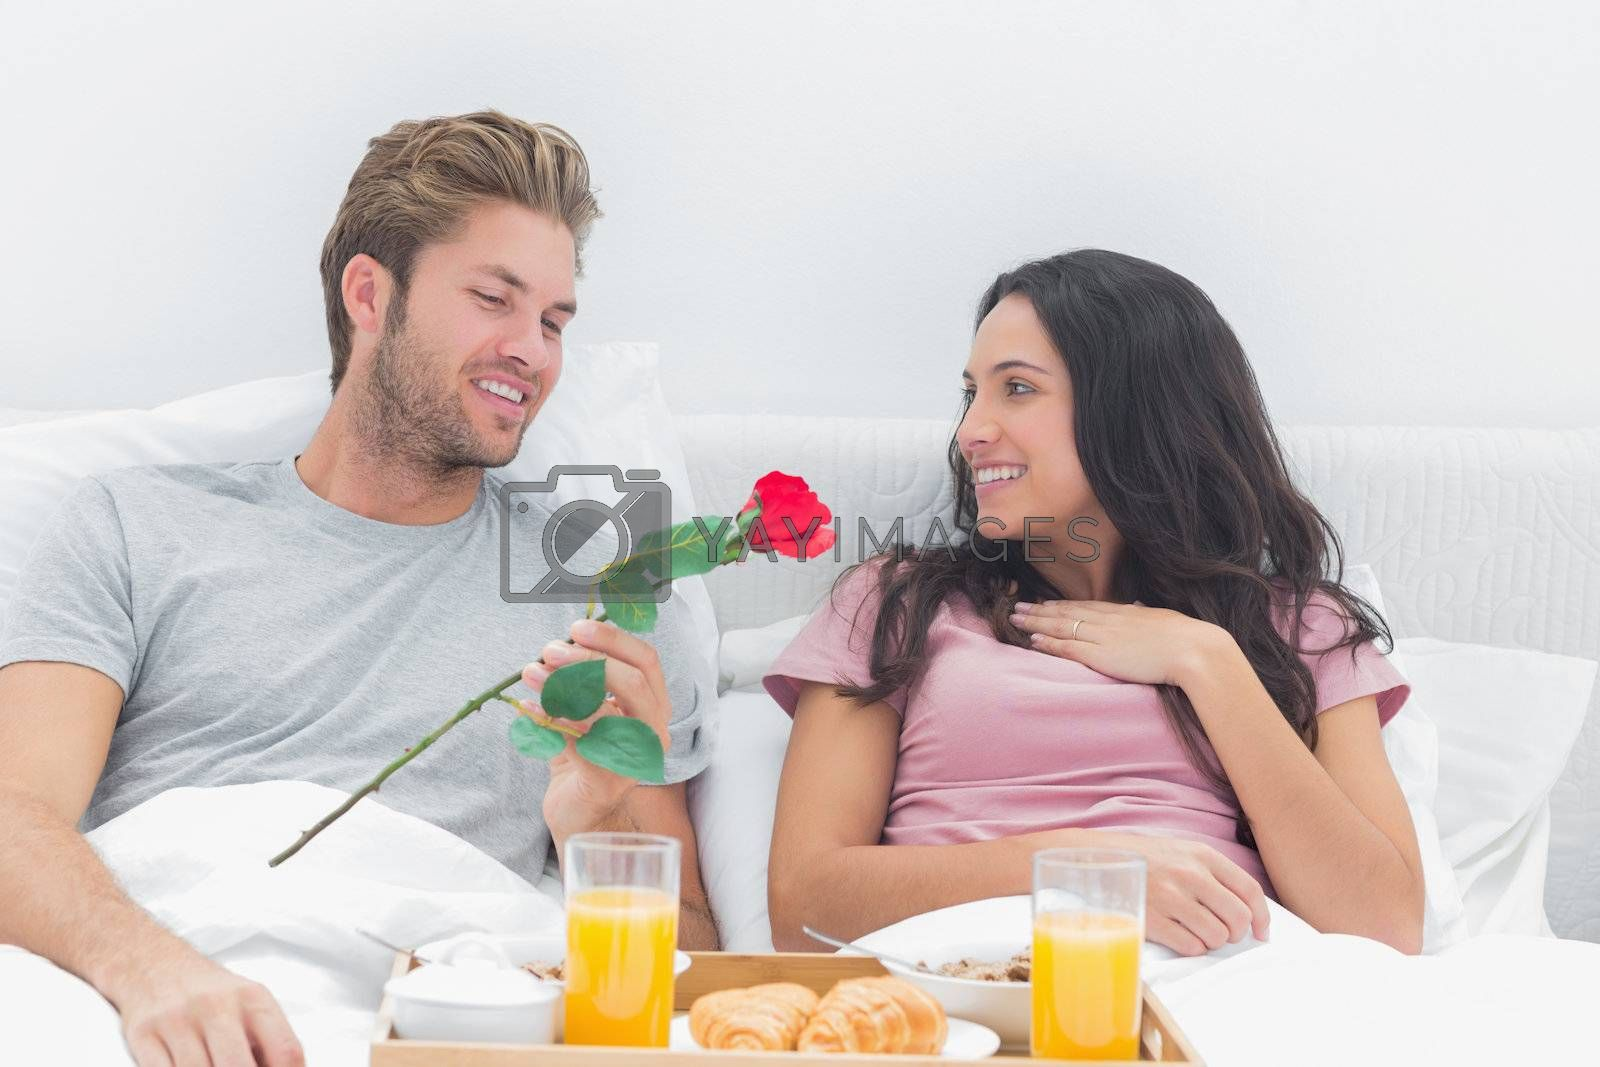 Man offering a rose to his wife during breakfast in bed